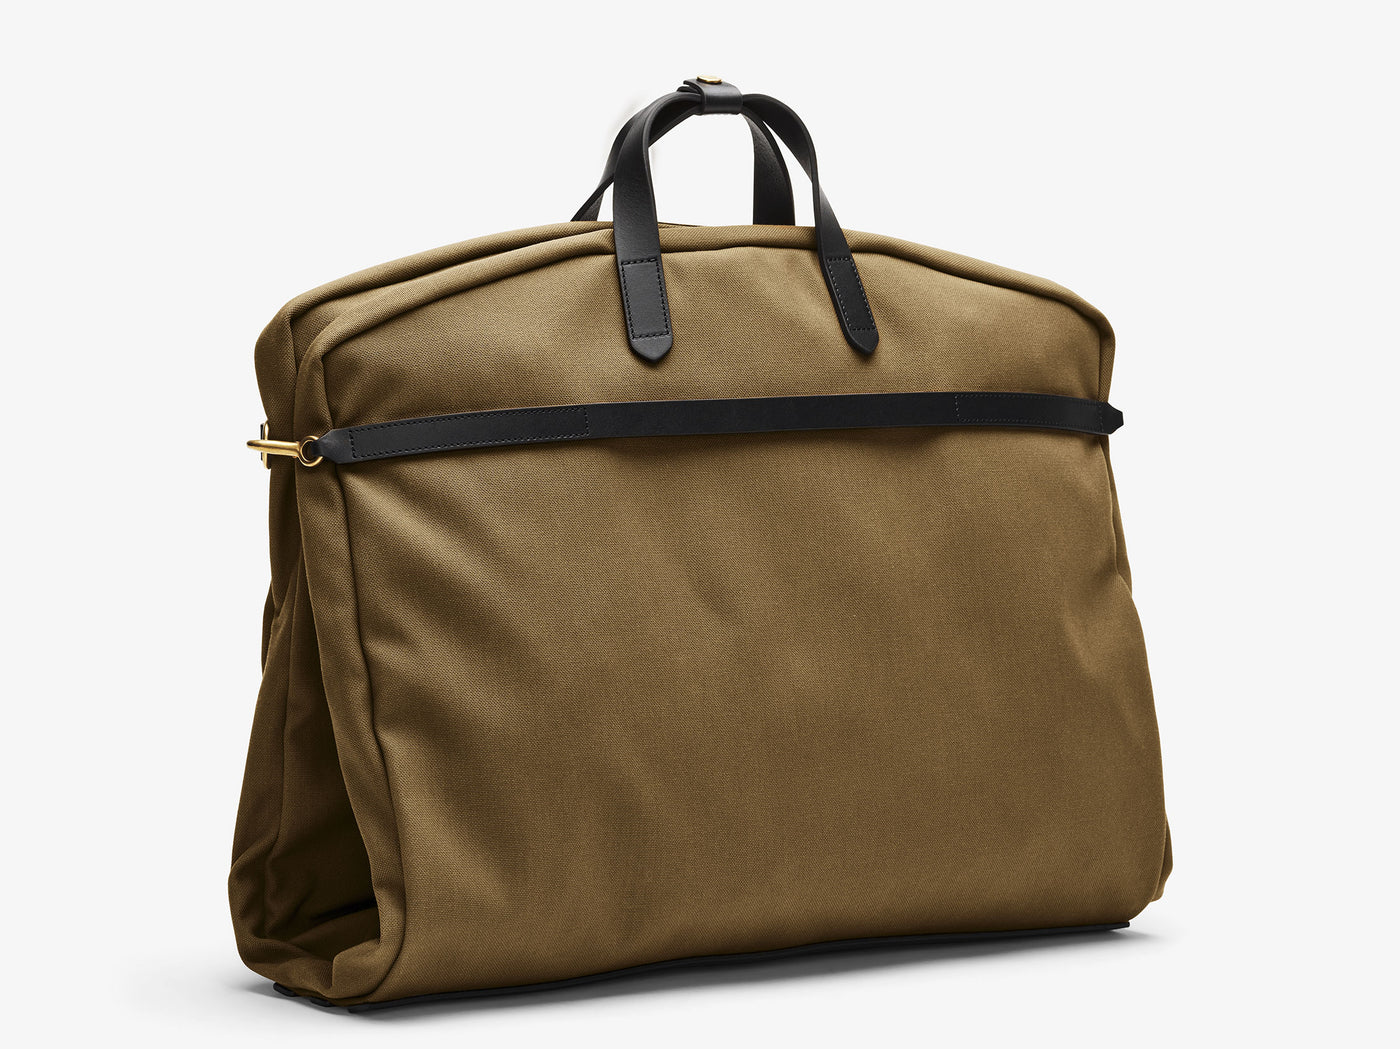 M/S Suit Carrier -Khaki/Black